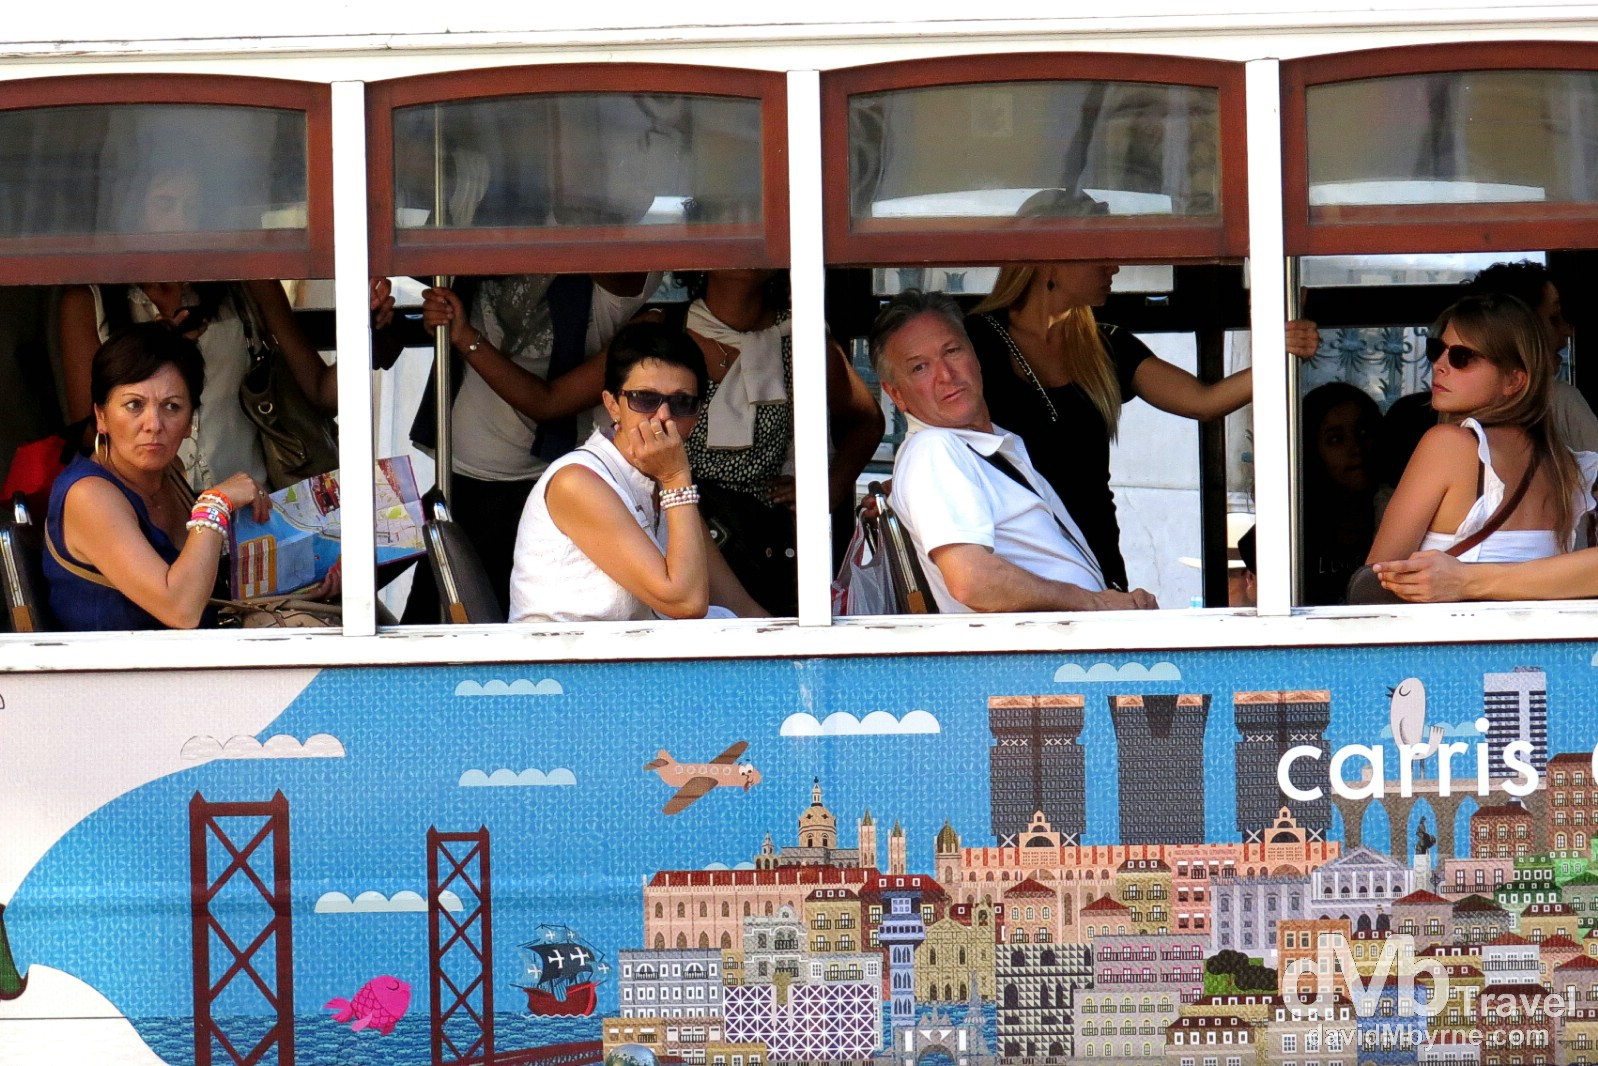 Riding Tram 28, Lisbon, Portugal. August 26th 2013.